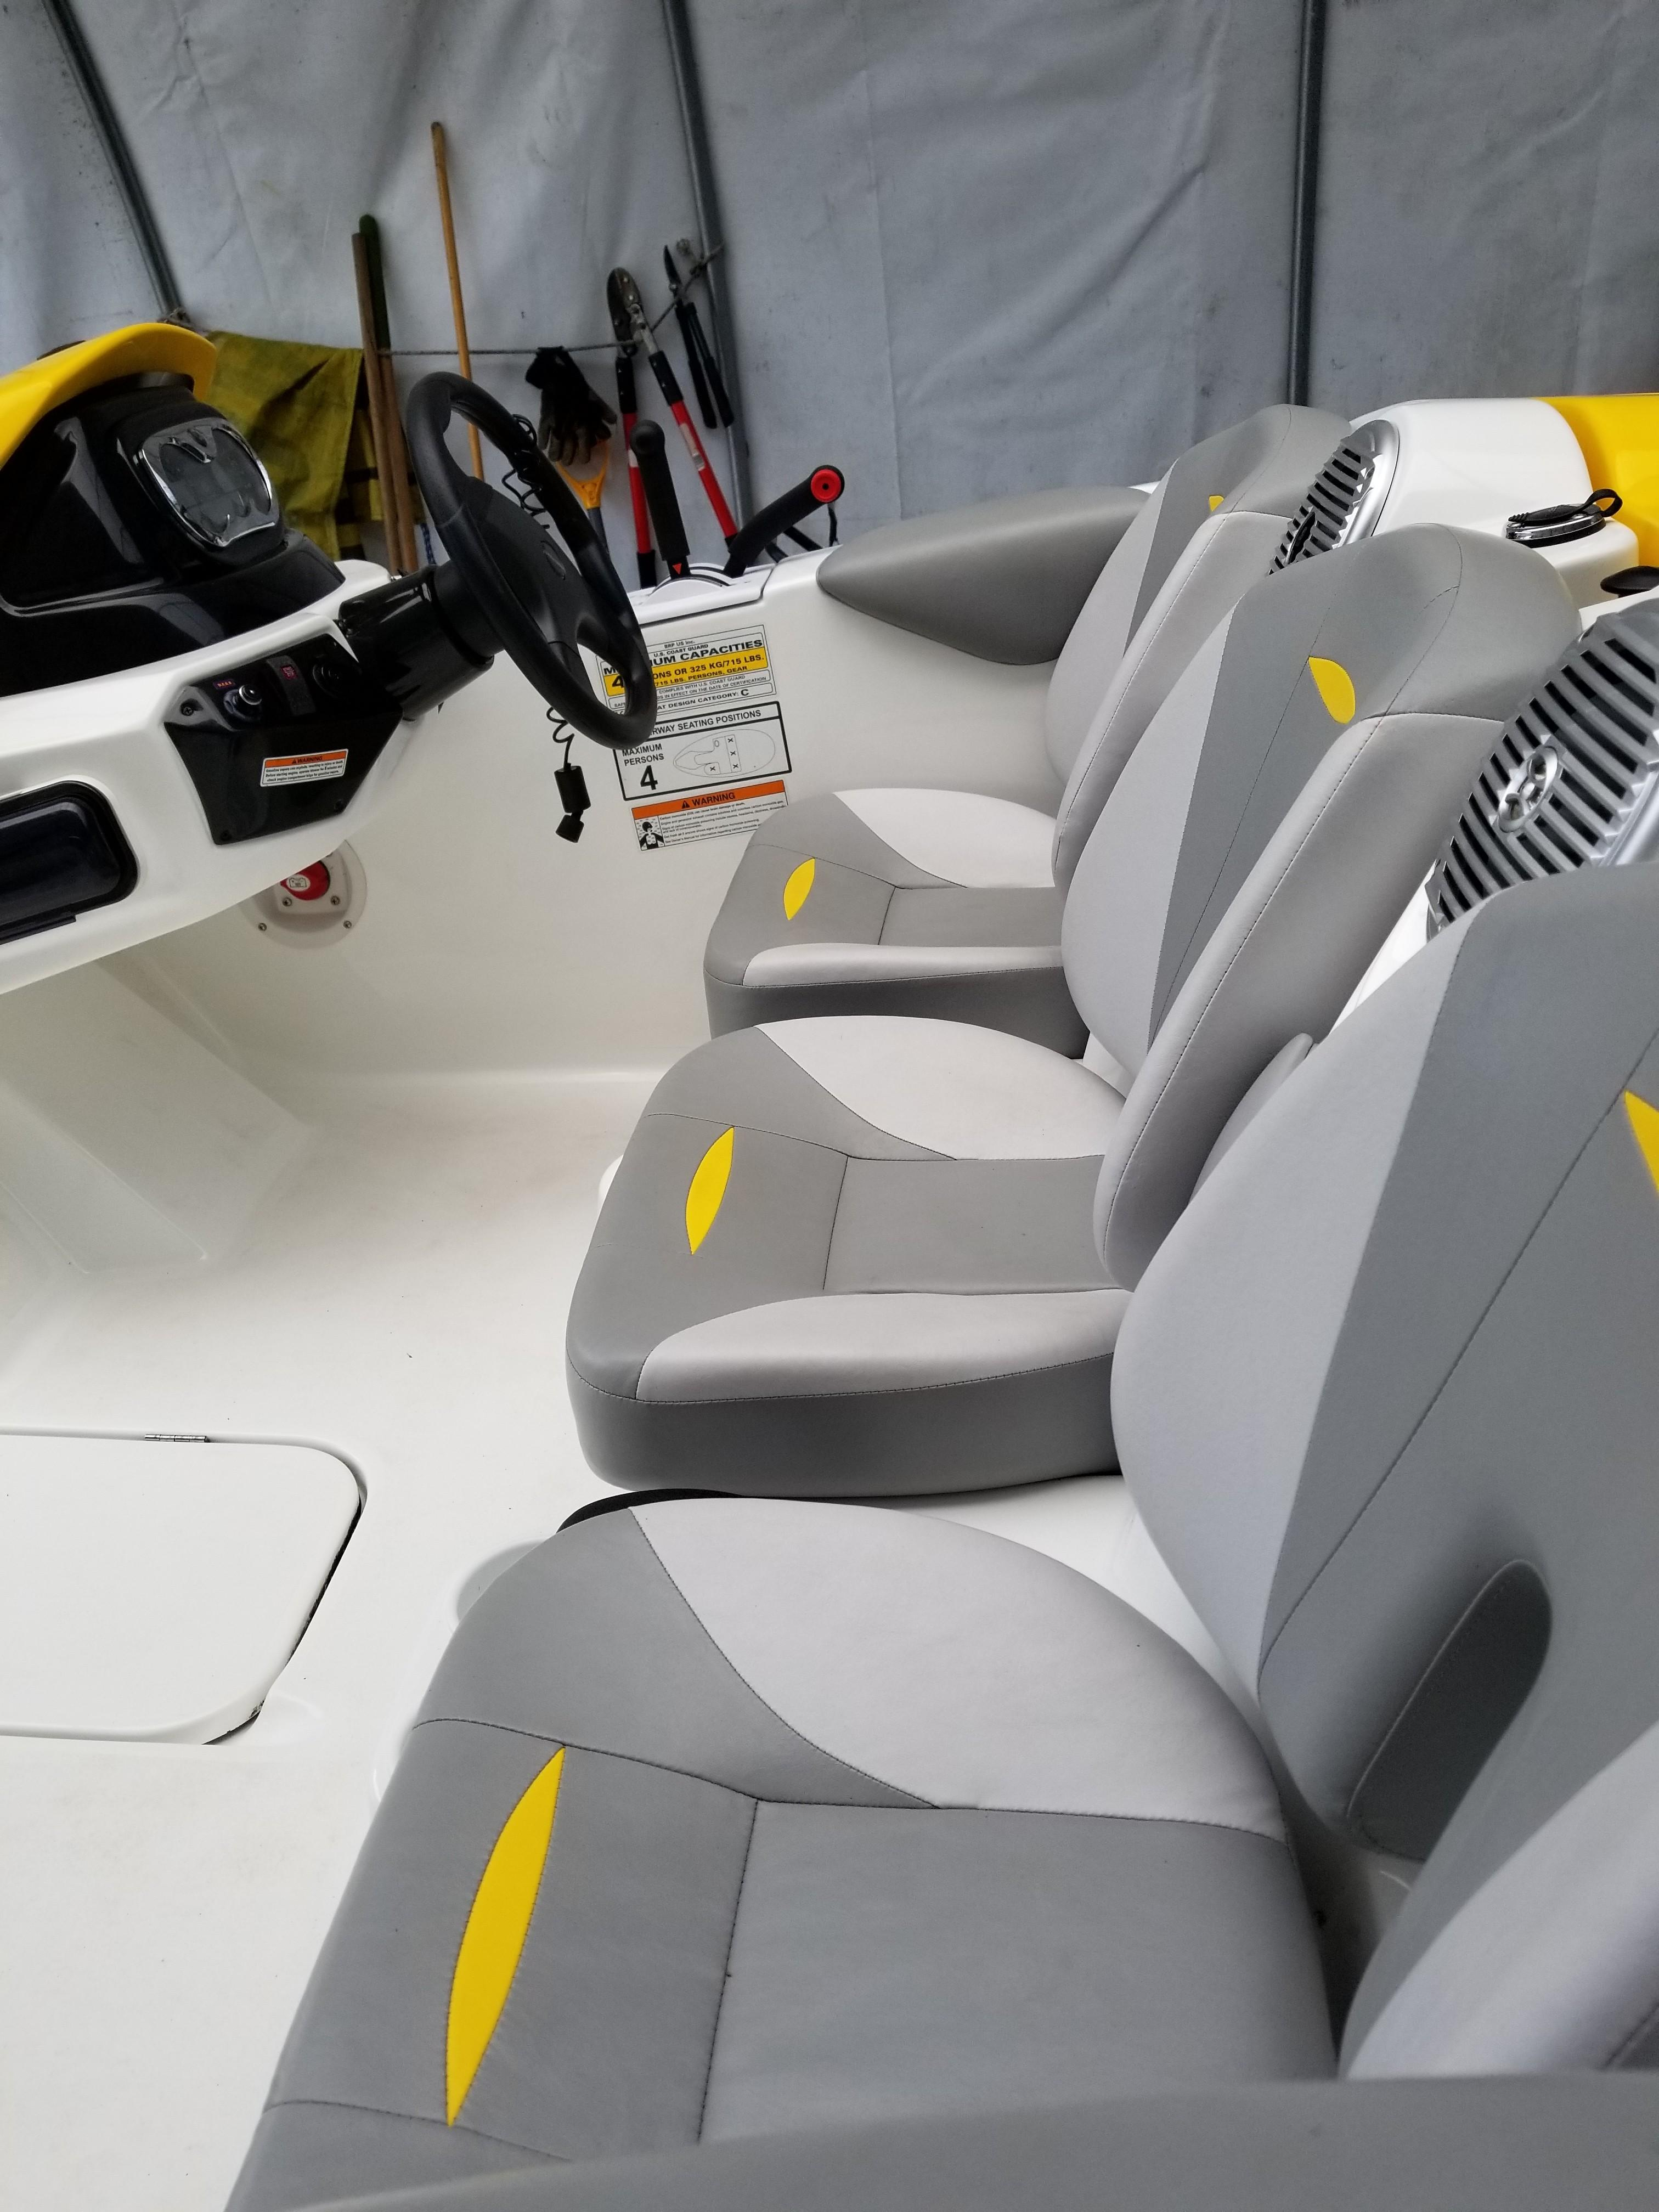 2009 Sea Doo Sportboat boat for sale, model of the boat is 150 Speedster & Image # 3 of 16